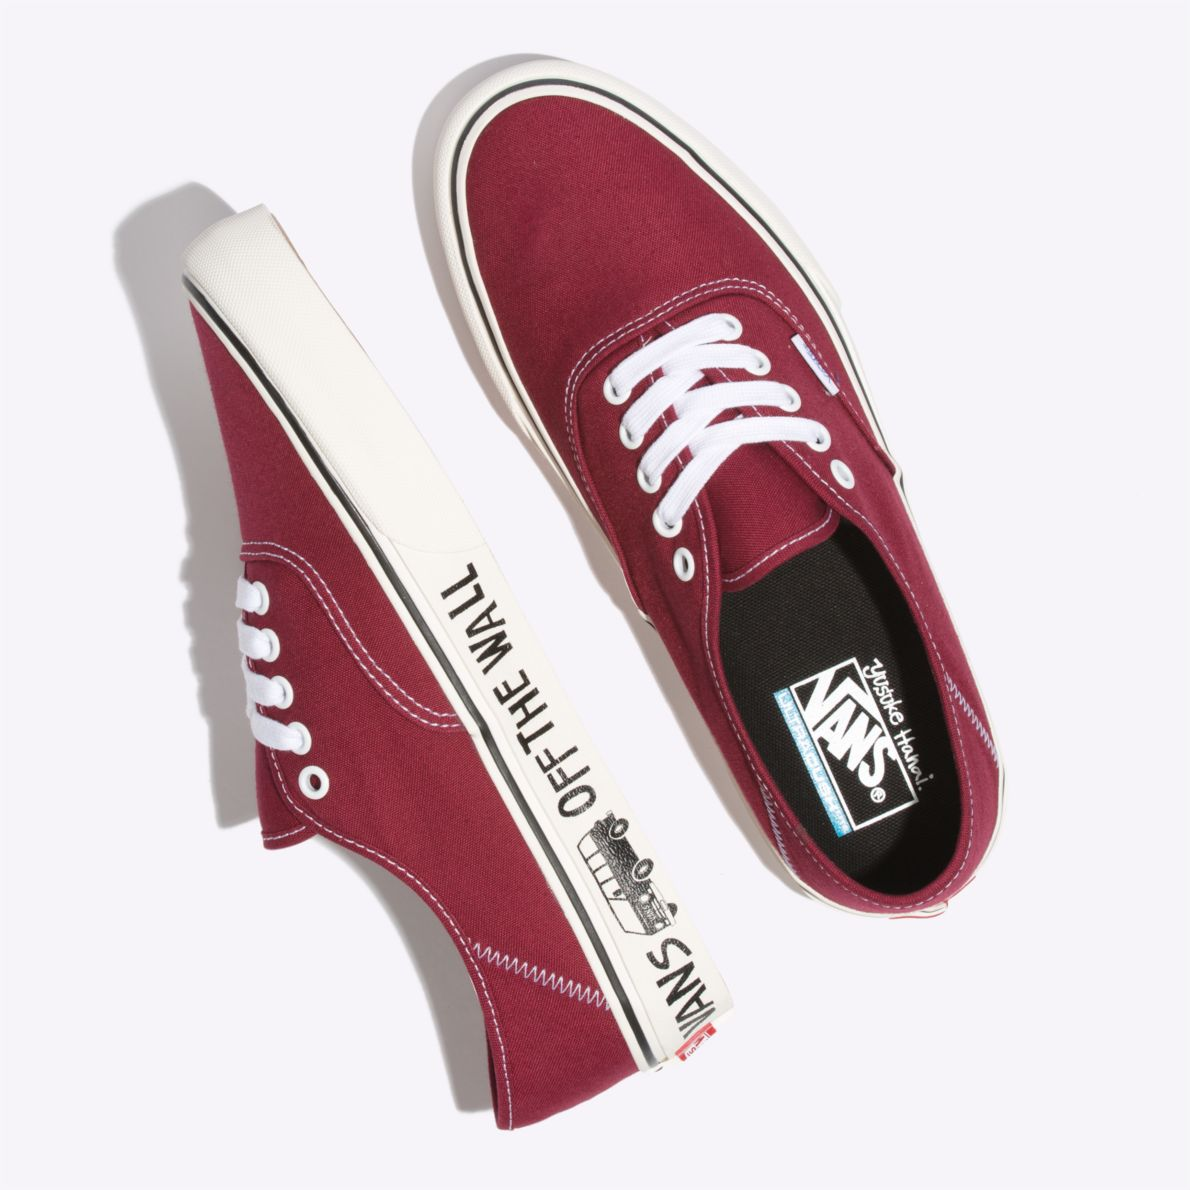 Vans Surf x Yusuke Hanai Spring 2019 Collection